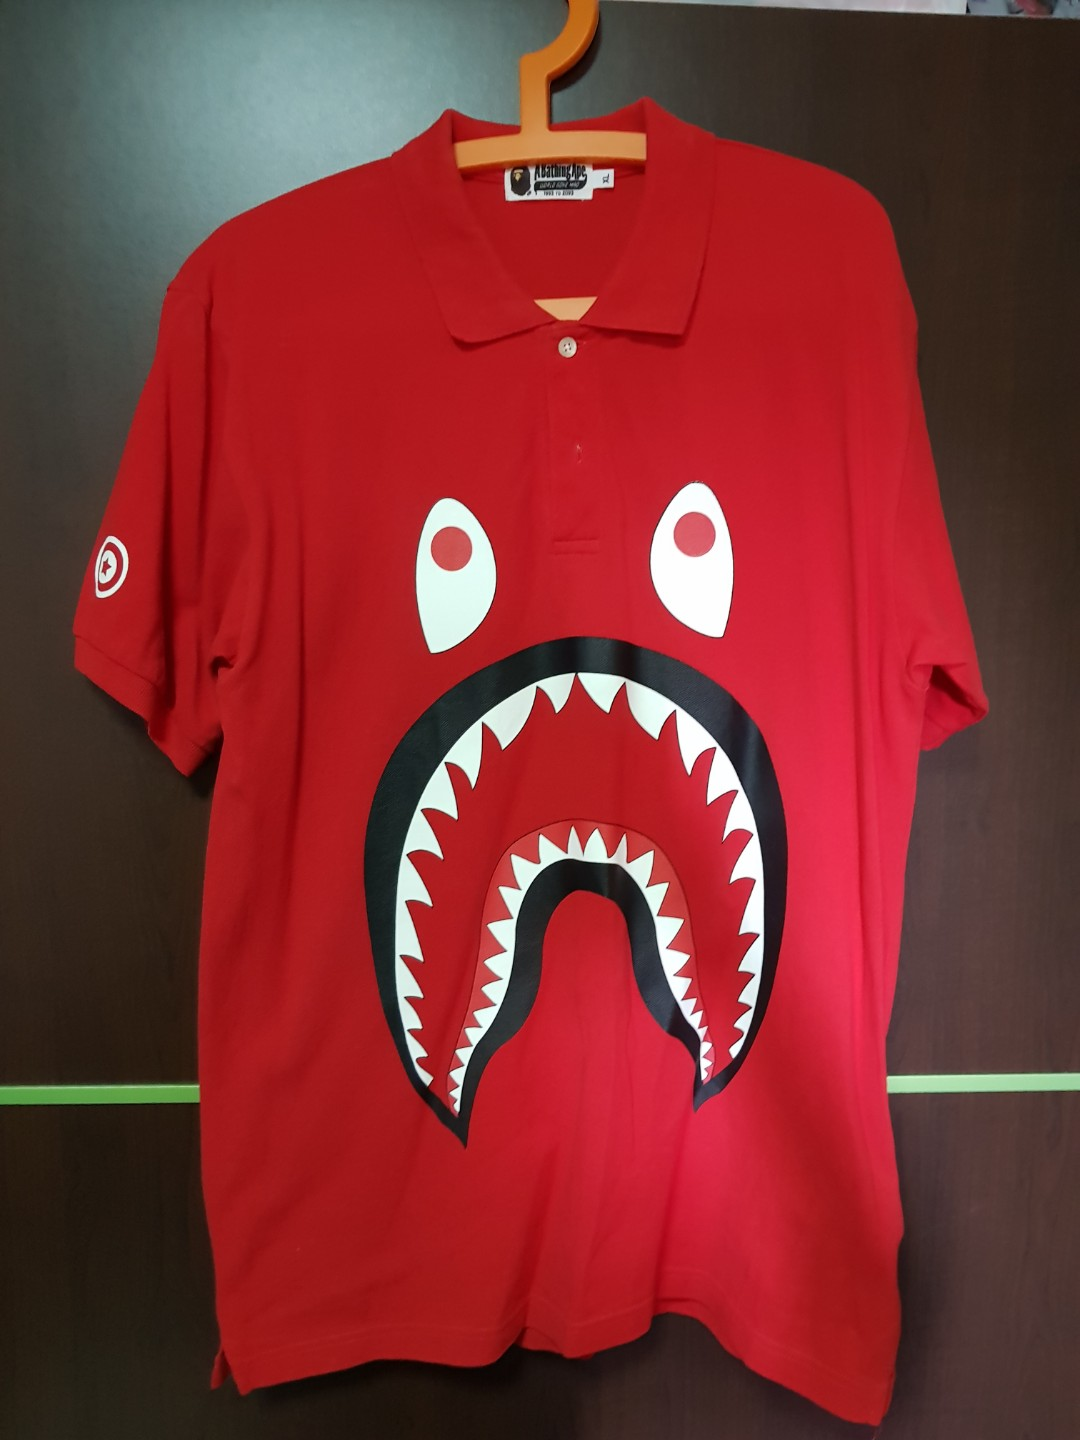 de1f5b6a WTS Used Bape Shark Red Polo Tee XL, Men's Fashion, Clothes, Tops on  Carousell